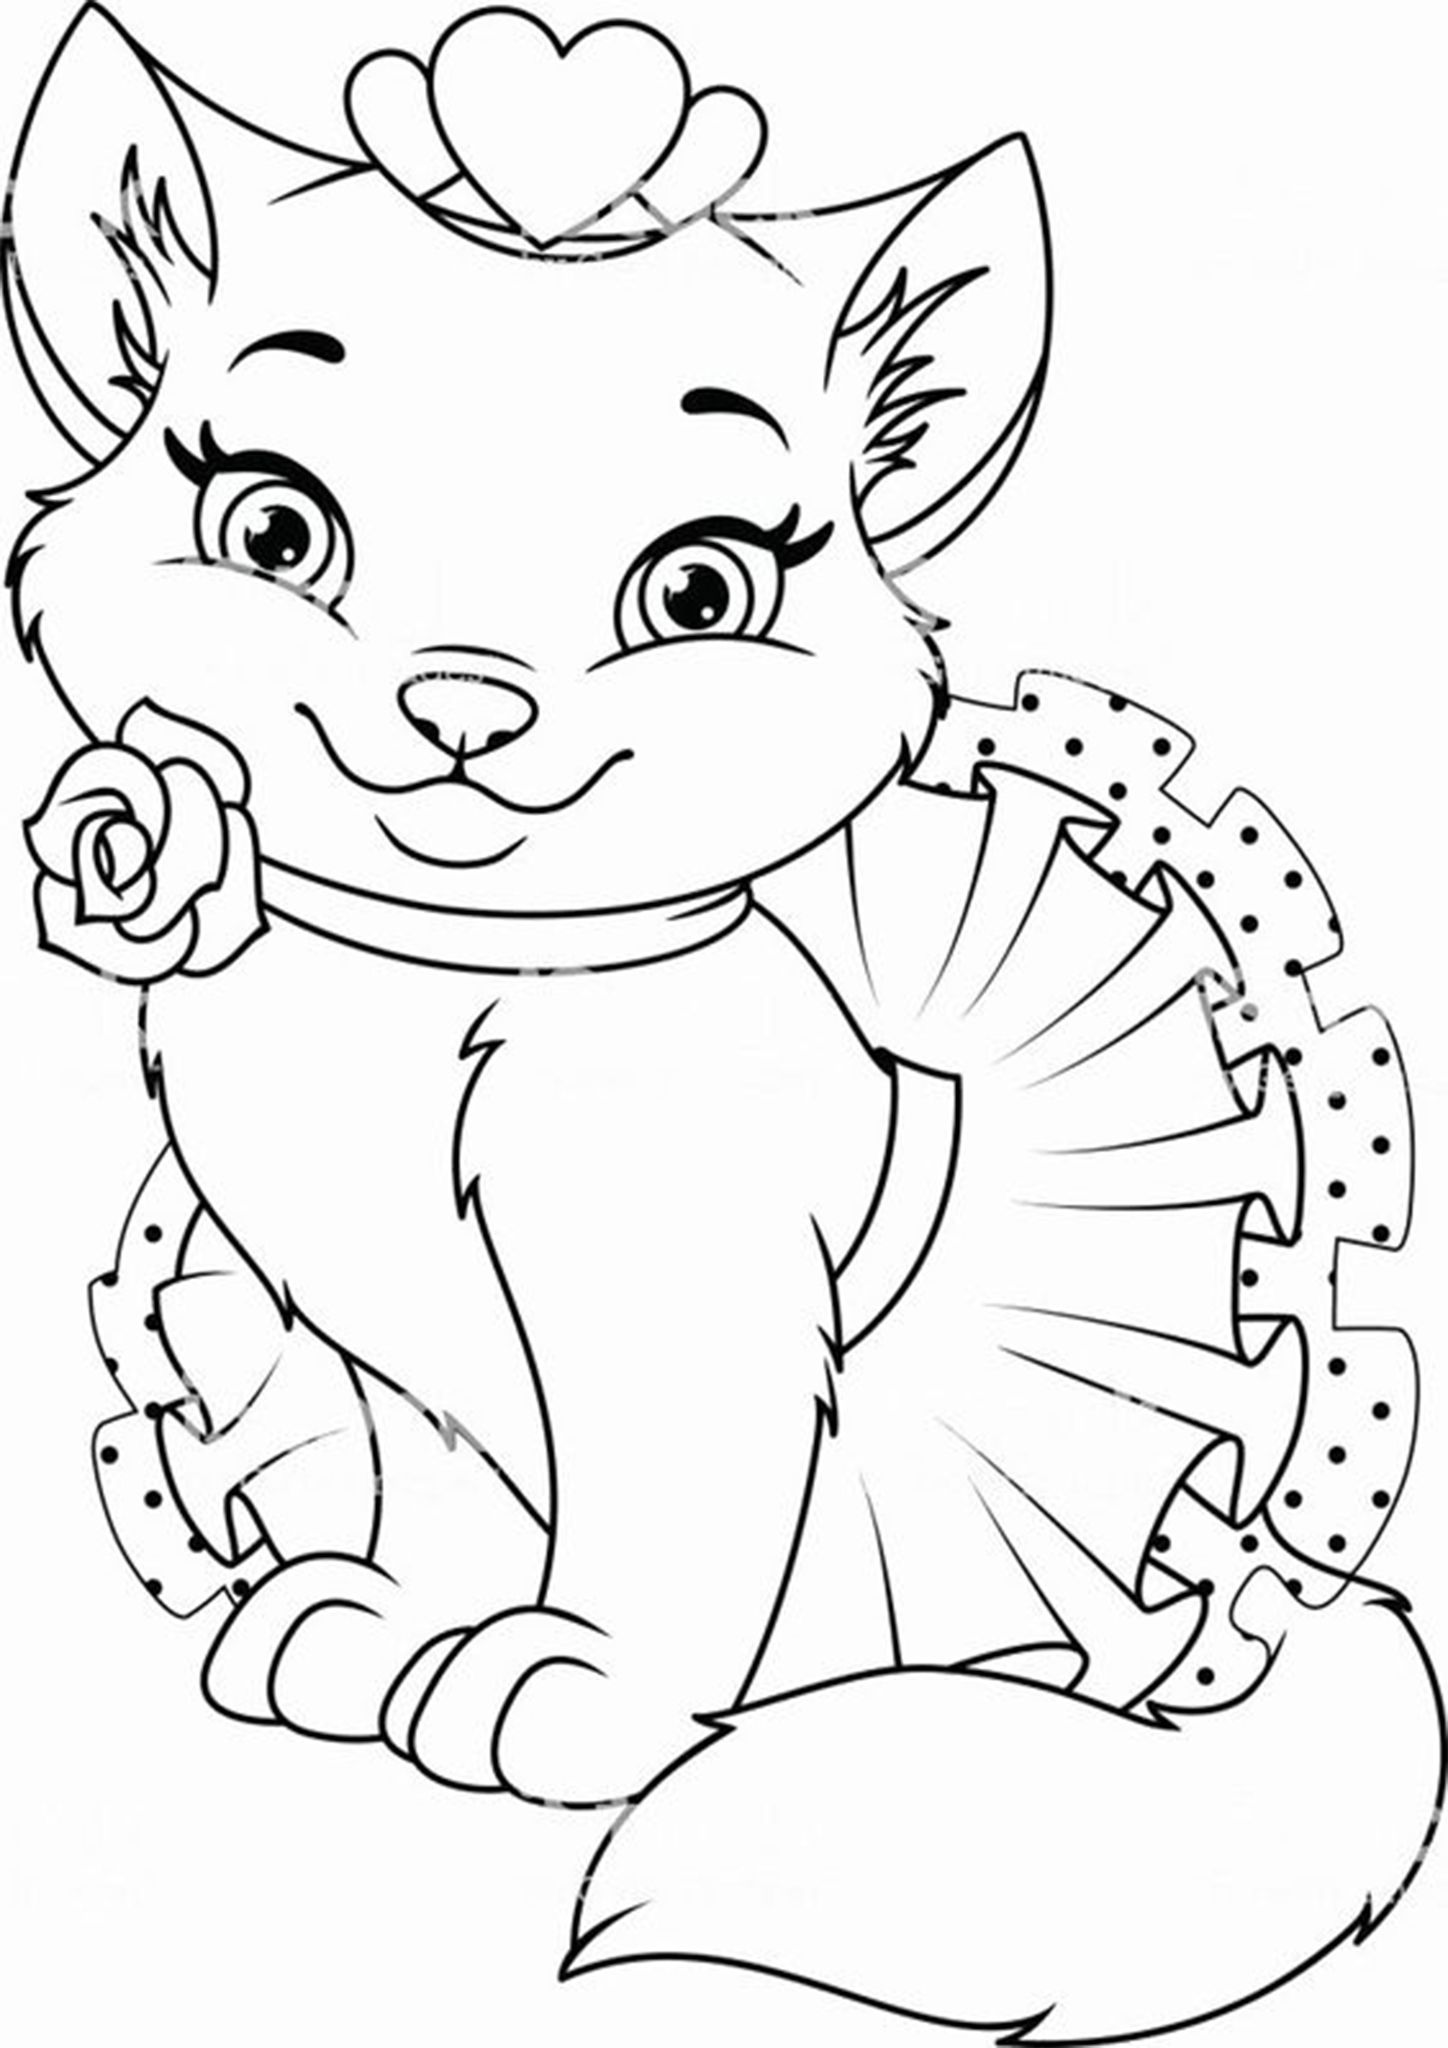 Free Easy To Print Kitten Coloring Pages Animal Coloring Pages Cat Coloring Page Cat Coloring Book